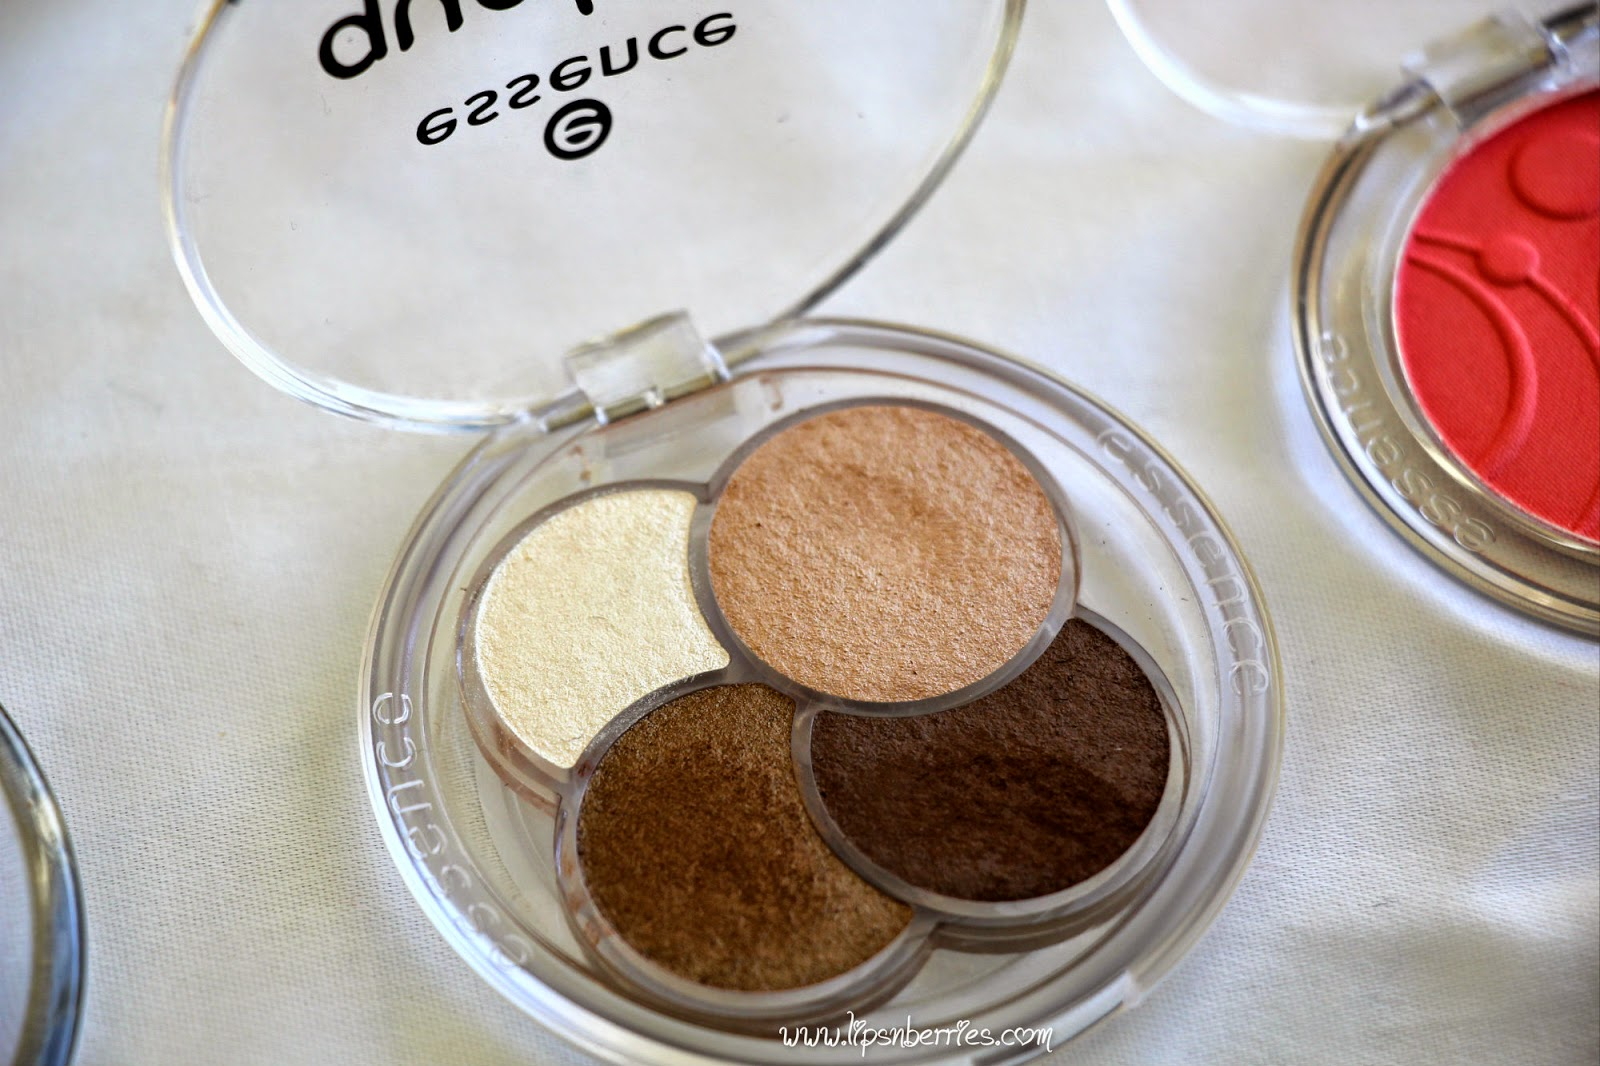 Essence quattro to die for review